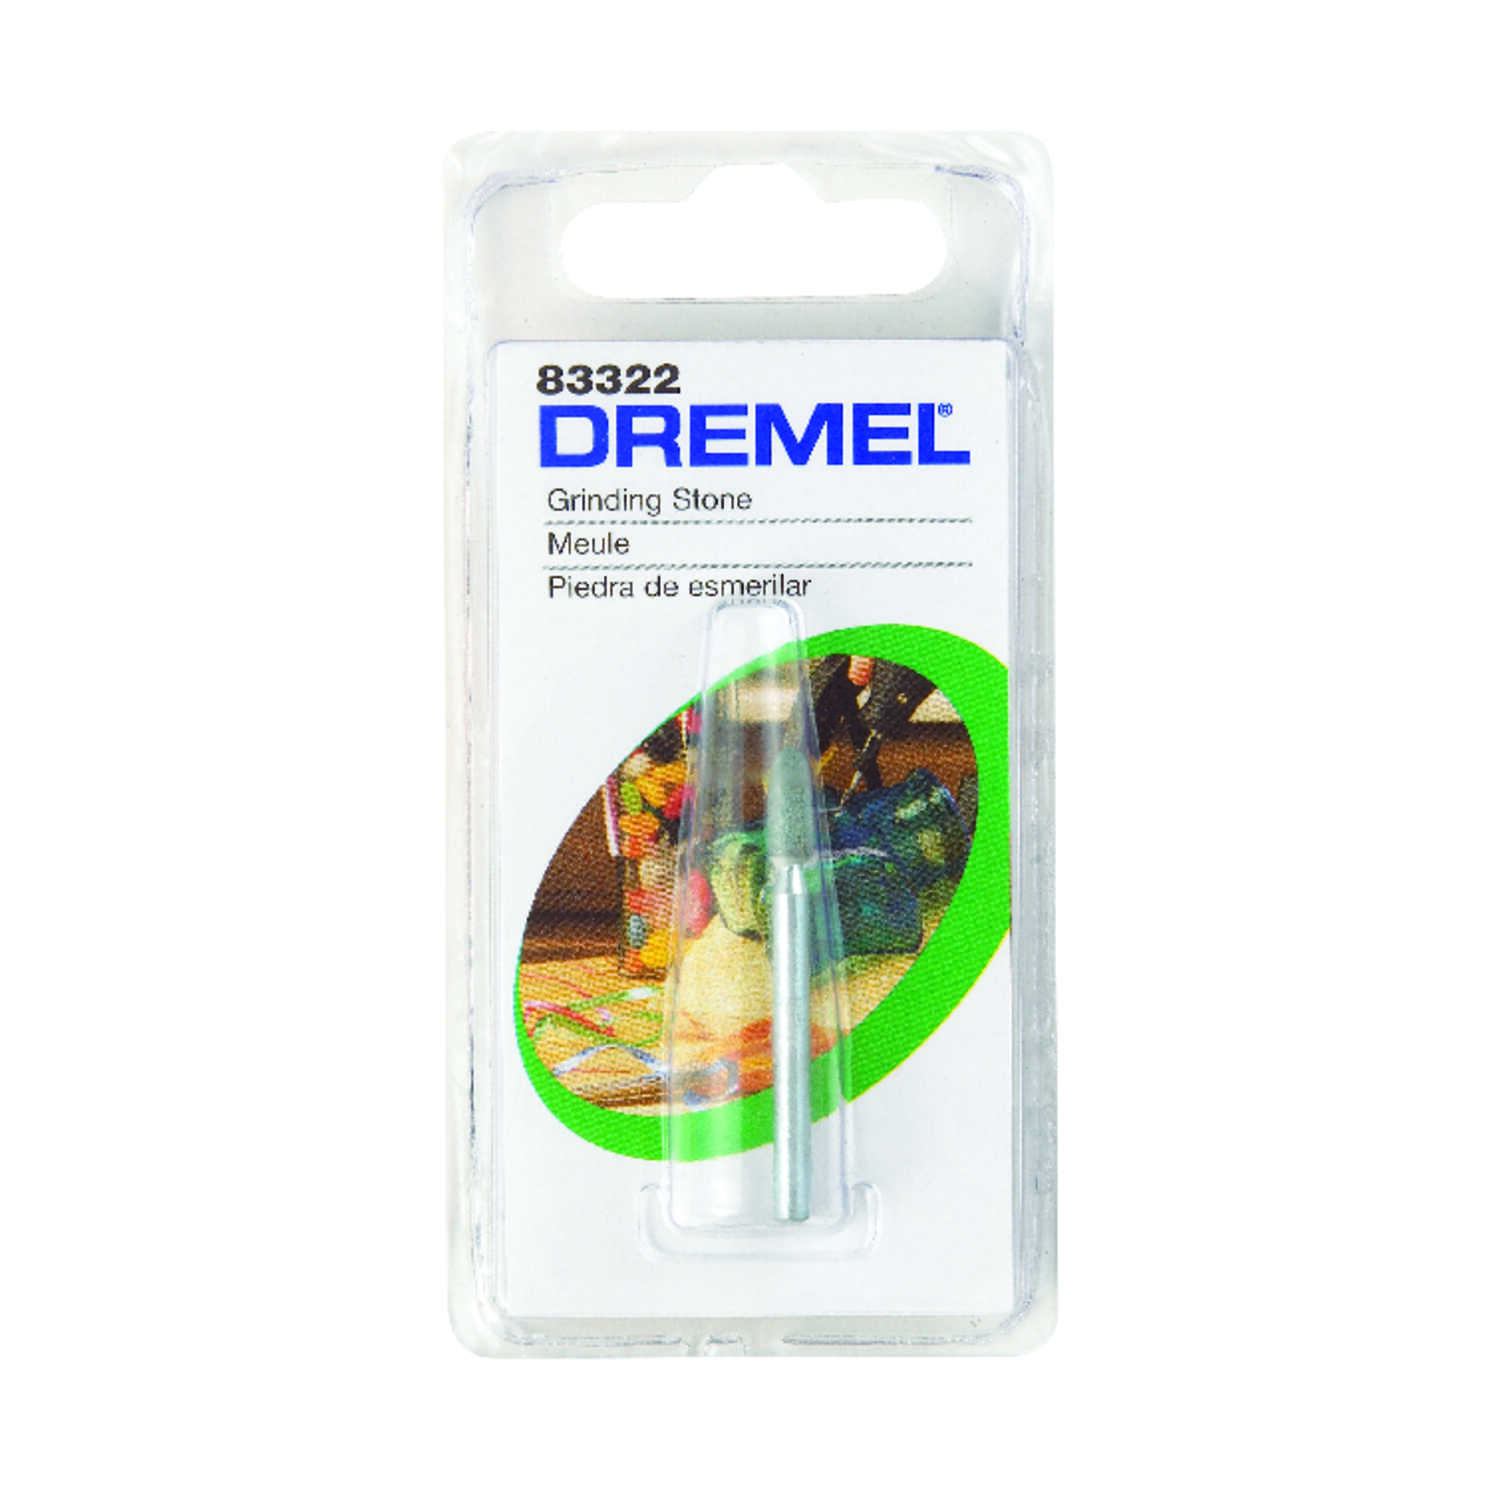 Dremel  1/8 in. Dia. x 1/8 in. L Silicon Carbide  Grinding Stone  Conical  35000 rpm 1 pc.